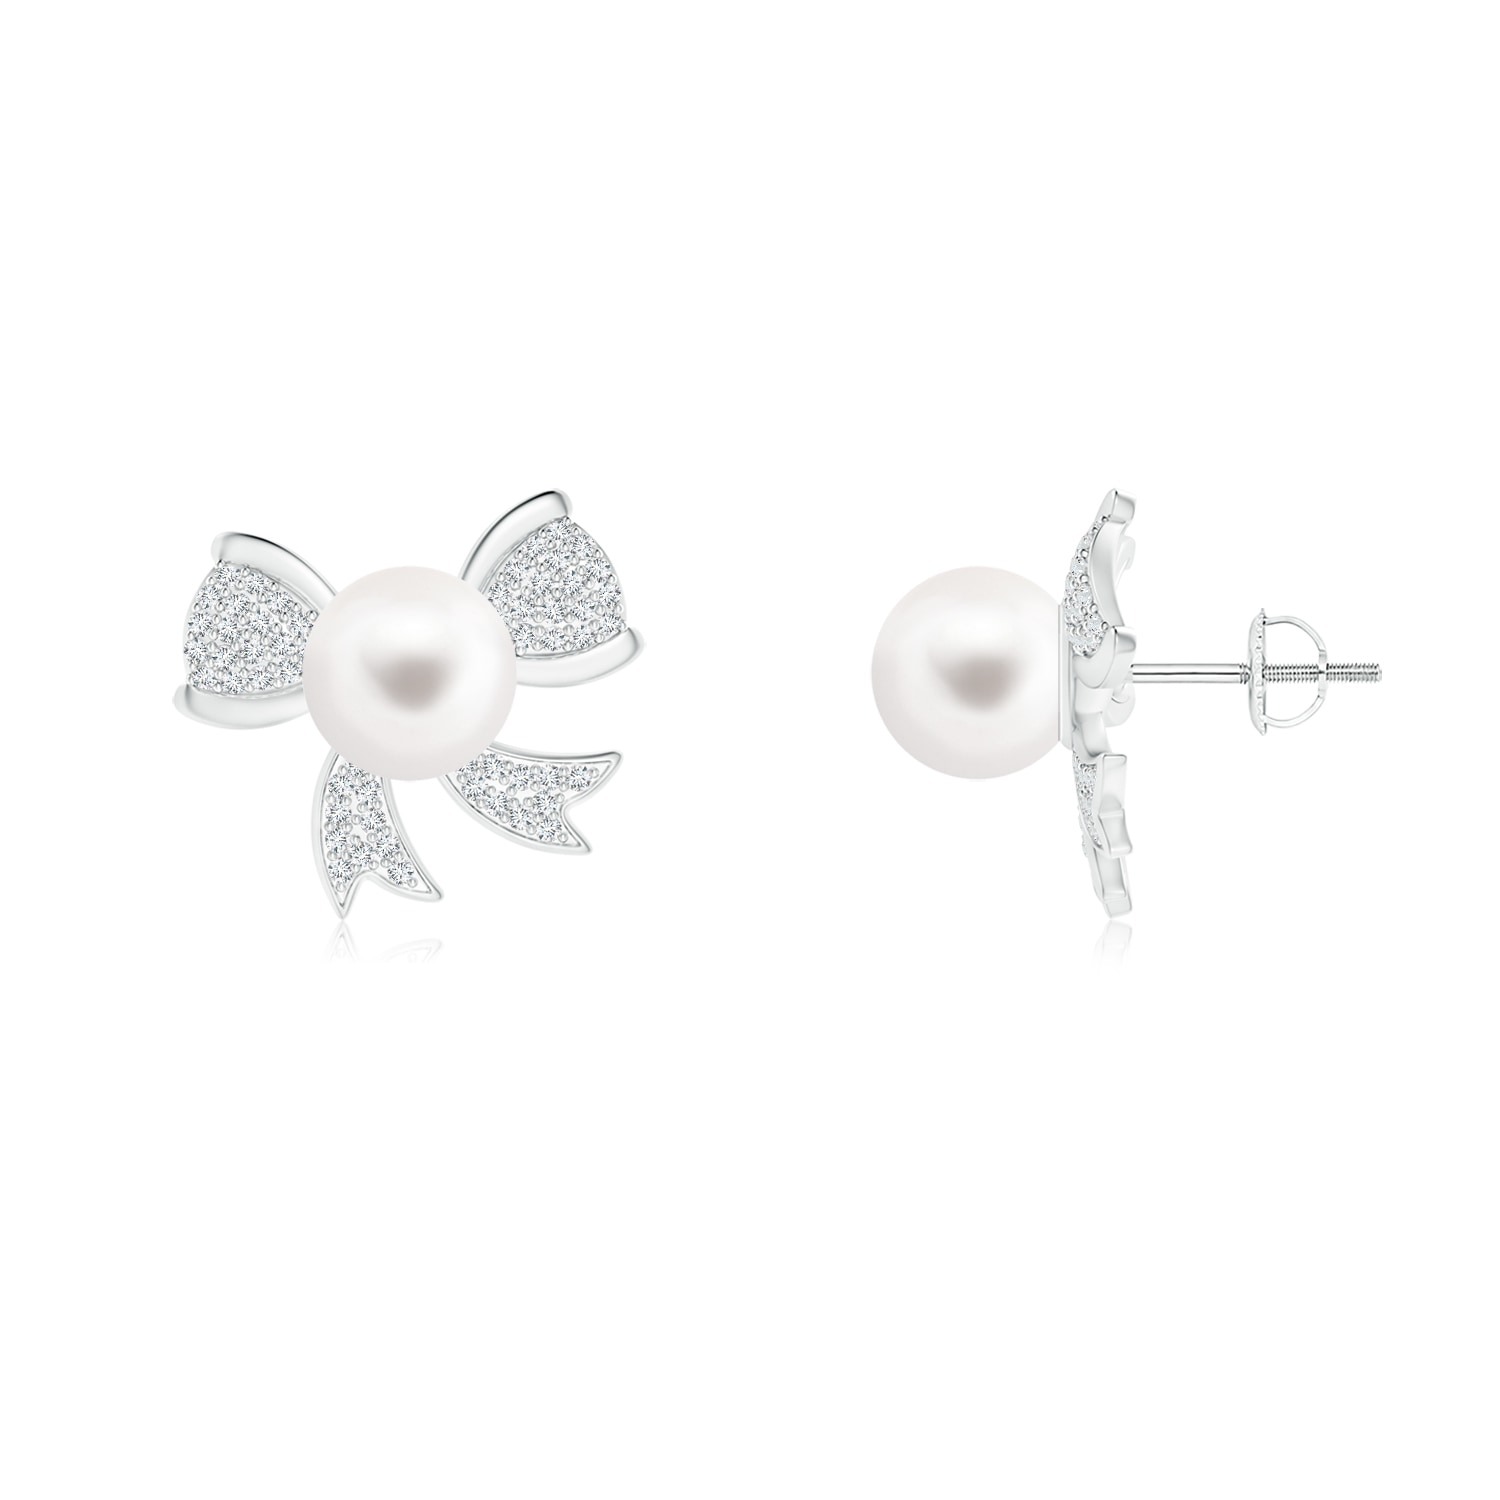 Freshwater Cultured Pearl Bow Stud Earrings with Diamonds - Angara.com